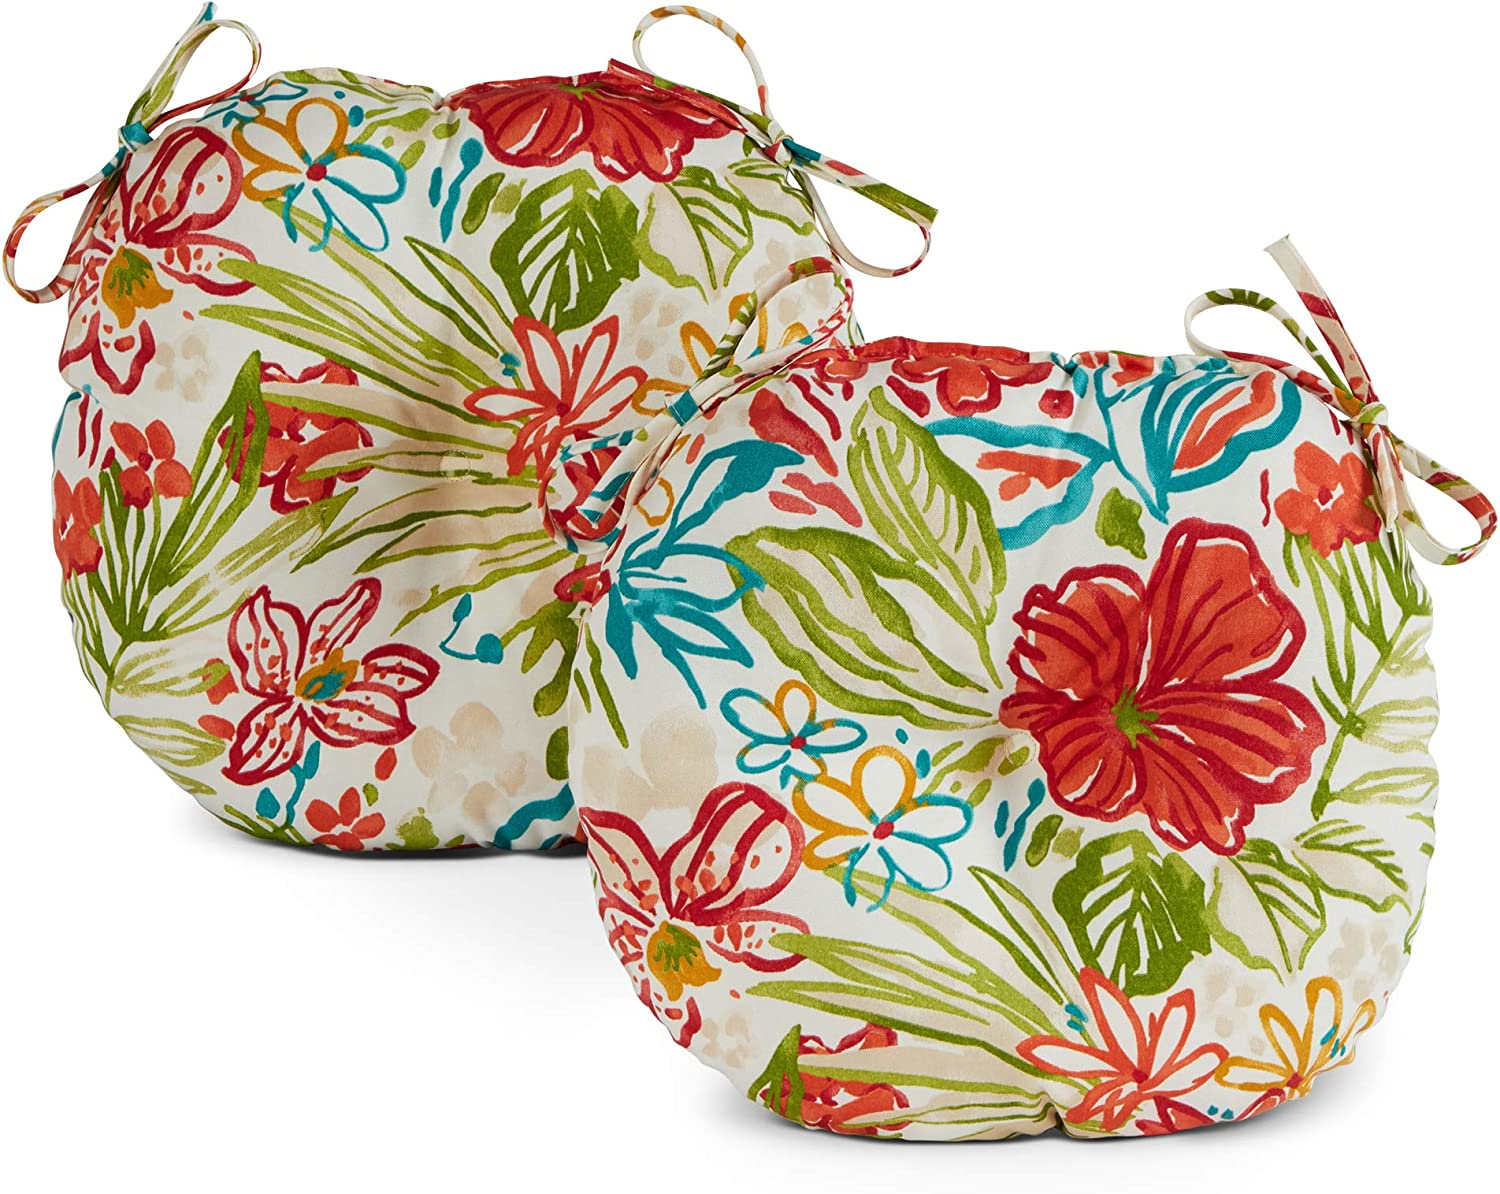 Greendale Home Fashions AZ5816S2-BREEZE Garden Floral Outdoor 15-inch Bistro Seat Cushion (Set of 2)